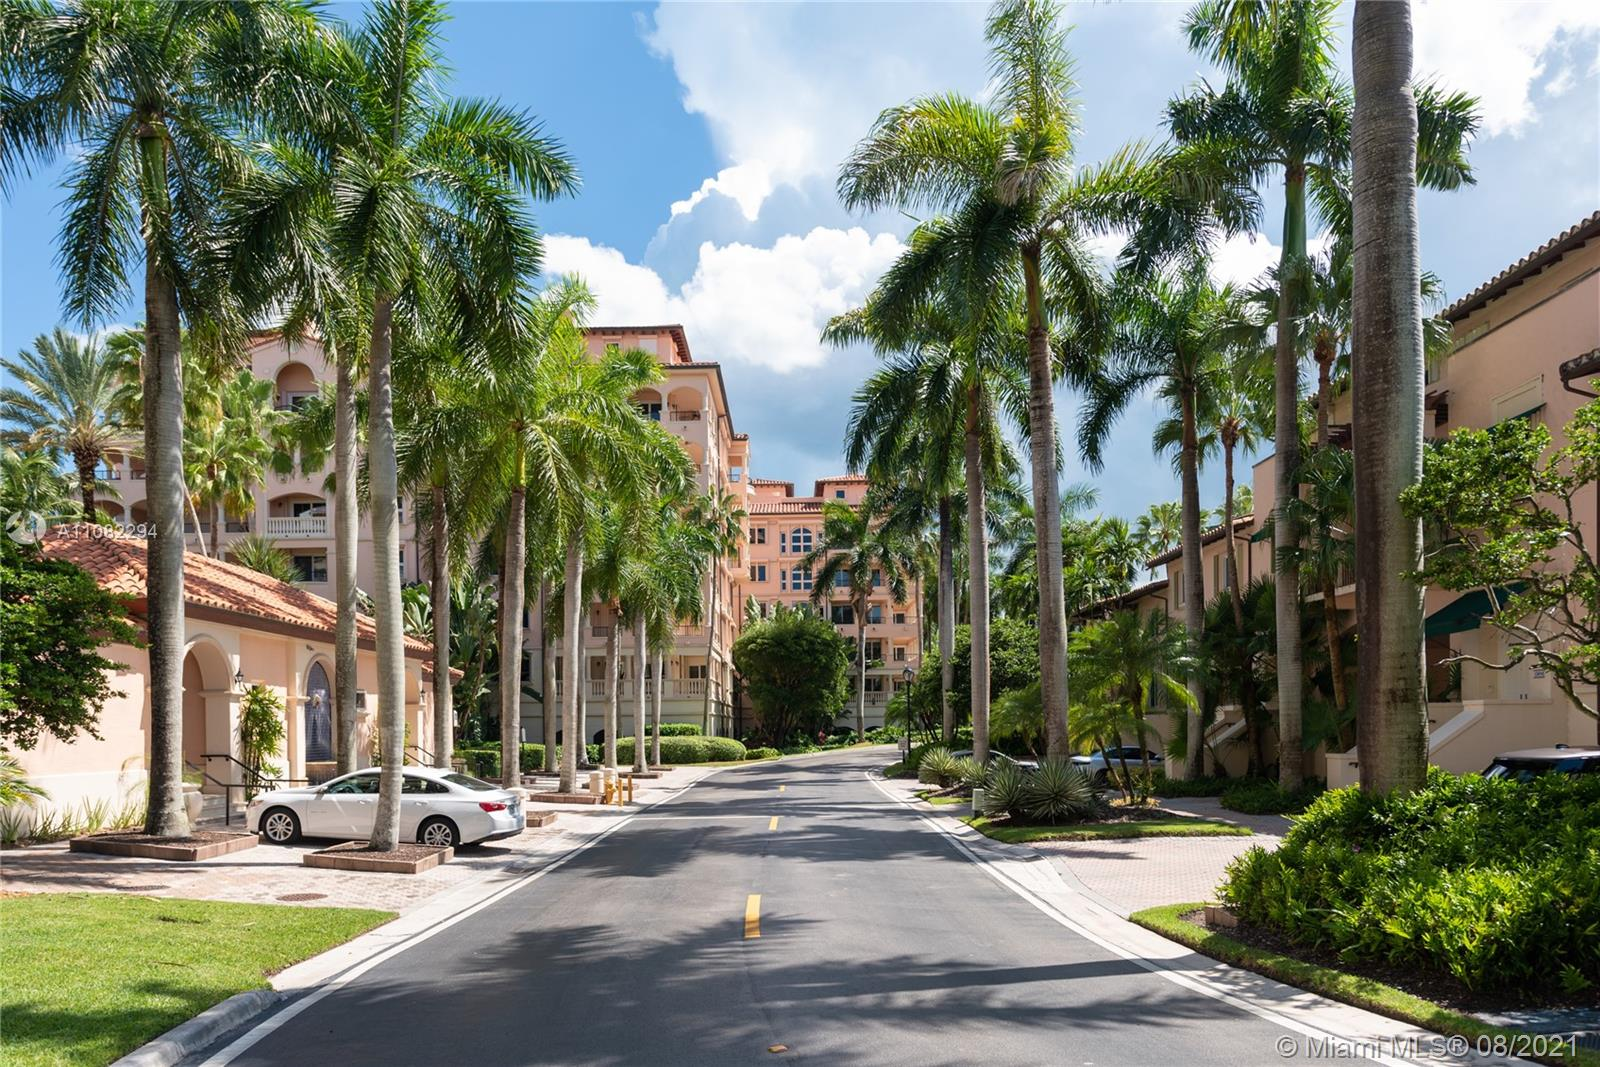 """Deering Bay, an oasis in Coral Gables! Private apartment with wrap-around terrace, where palm trees & nature surround you and you will enjoy the most beautiful sunsets. You are literally steps from the marina, pool, yacht club, tennis & golf course. This unit in Padua is one of the BEST DEALS IN CORAL GABLES. Padua is a """"European-feel"""" Boutique-style condo with open air corridors, 2 units per floor, 5-story condo within the private gated community of Deering Bay Yacht & Country Club. 220 acres of bucolic grounds to explore. """"A"""" rated schools. 2 assigned covered parking & 1 golf cart spot. Deering Bay is among the most prestigious zip codes in South Florida, & if you're looking for a special opportunity, come & see this one! """"Complete Design Plans for Open Floor Plan Available""""."""